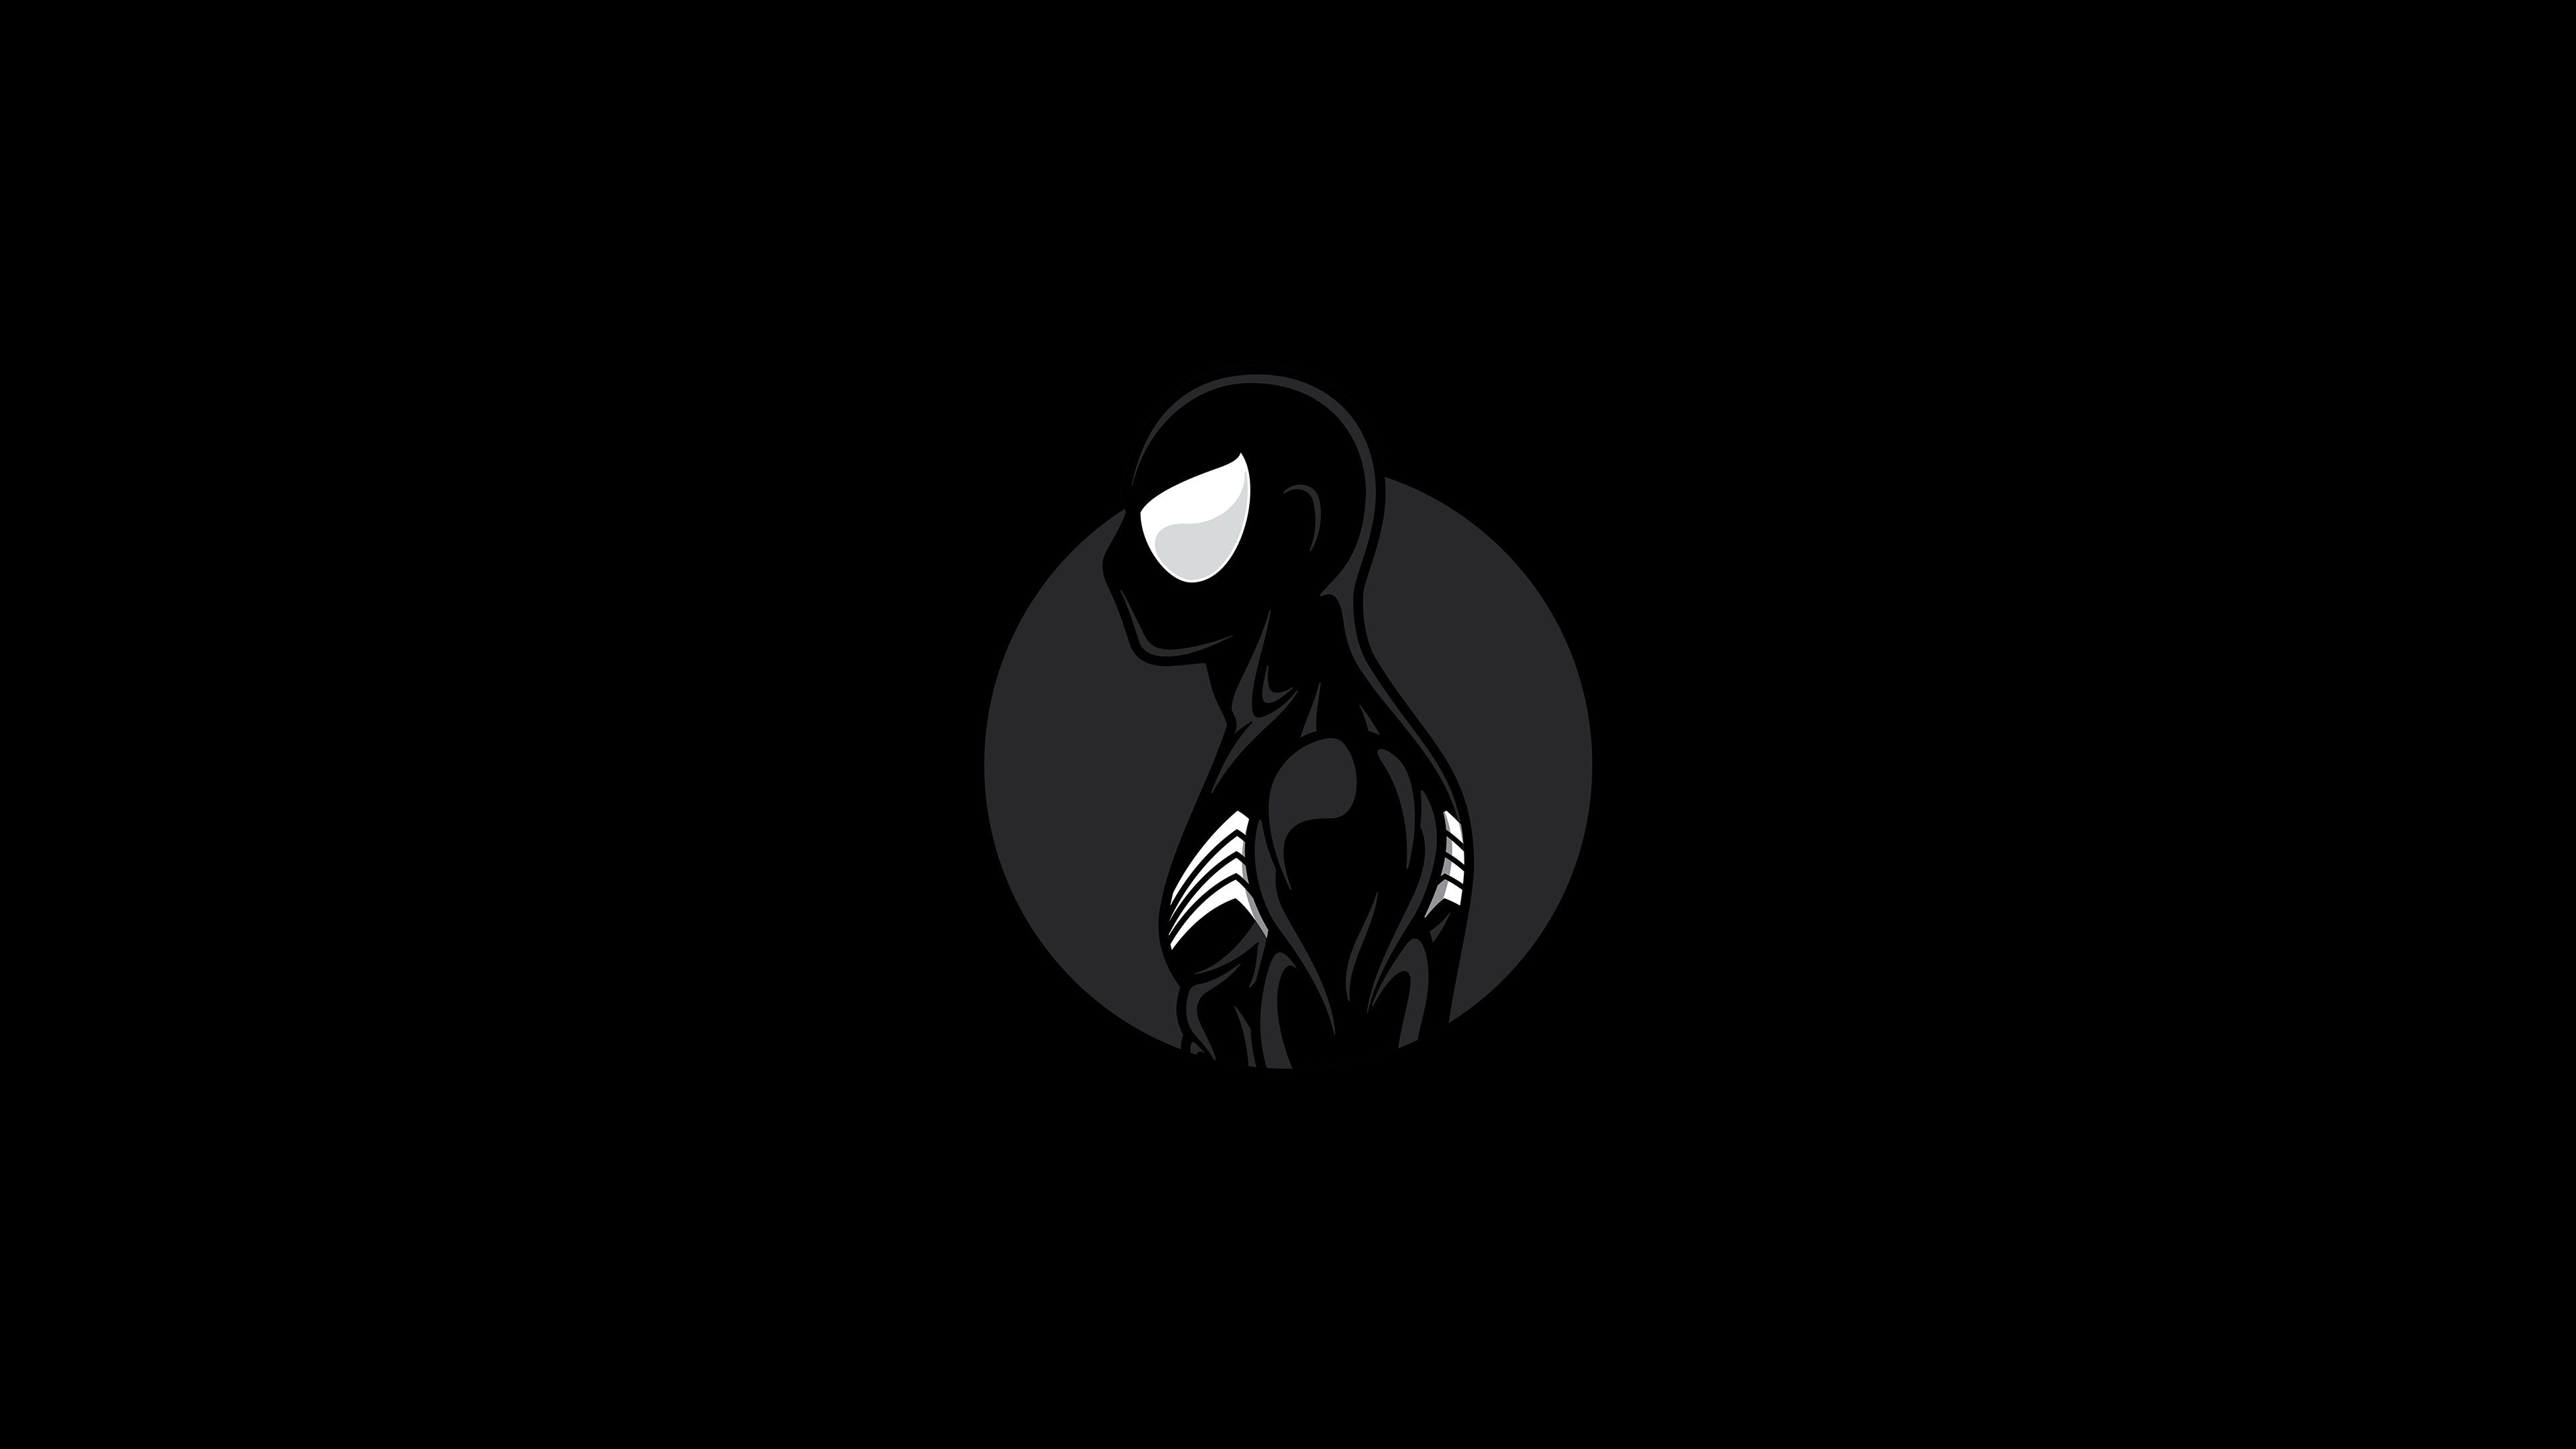 Spiderman Dark Minimalist Art 4k Hd Superheroes 4k